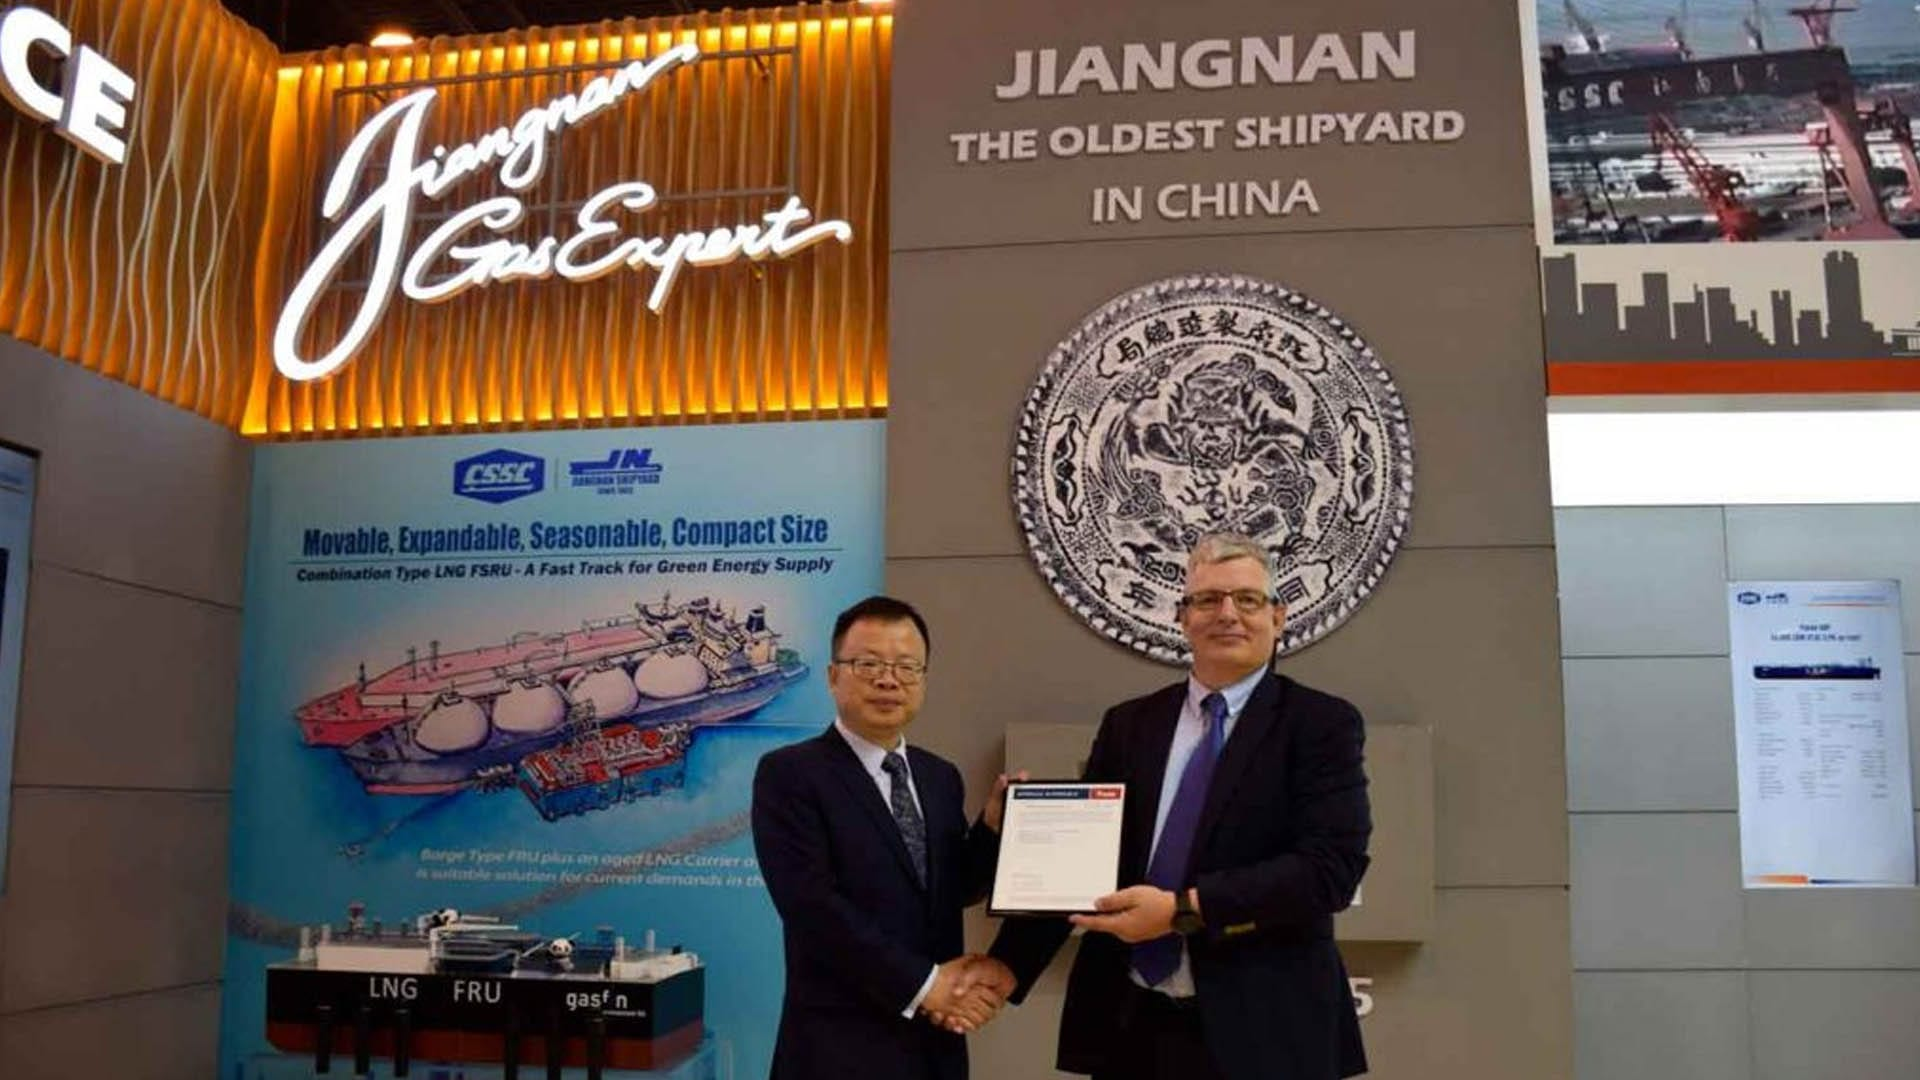 Jiangnan Shipyard Granted AIP for Two New Gas Carrier Designs